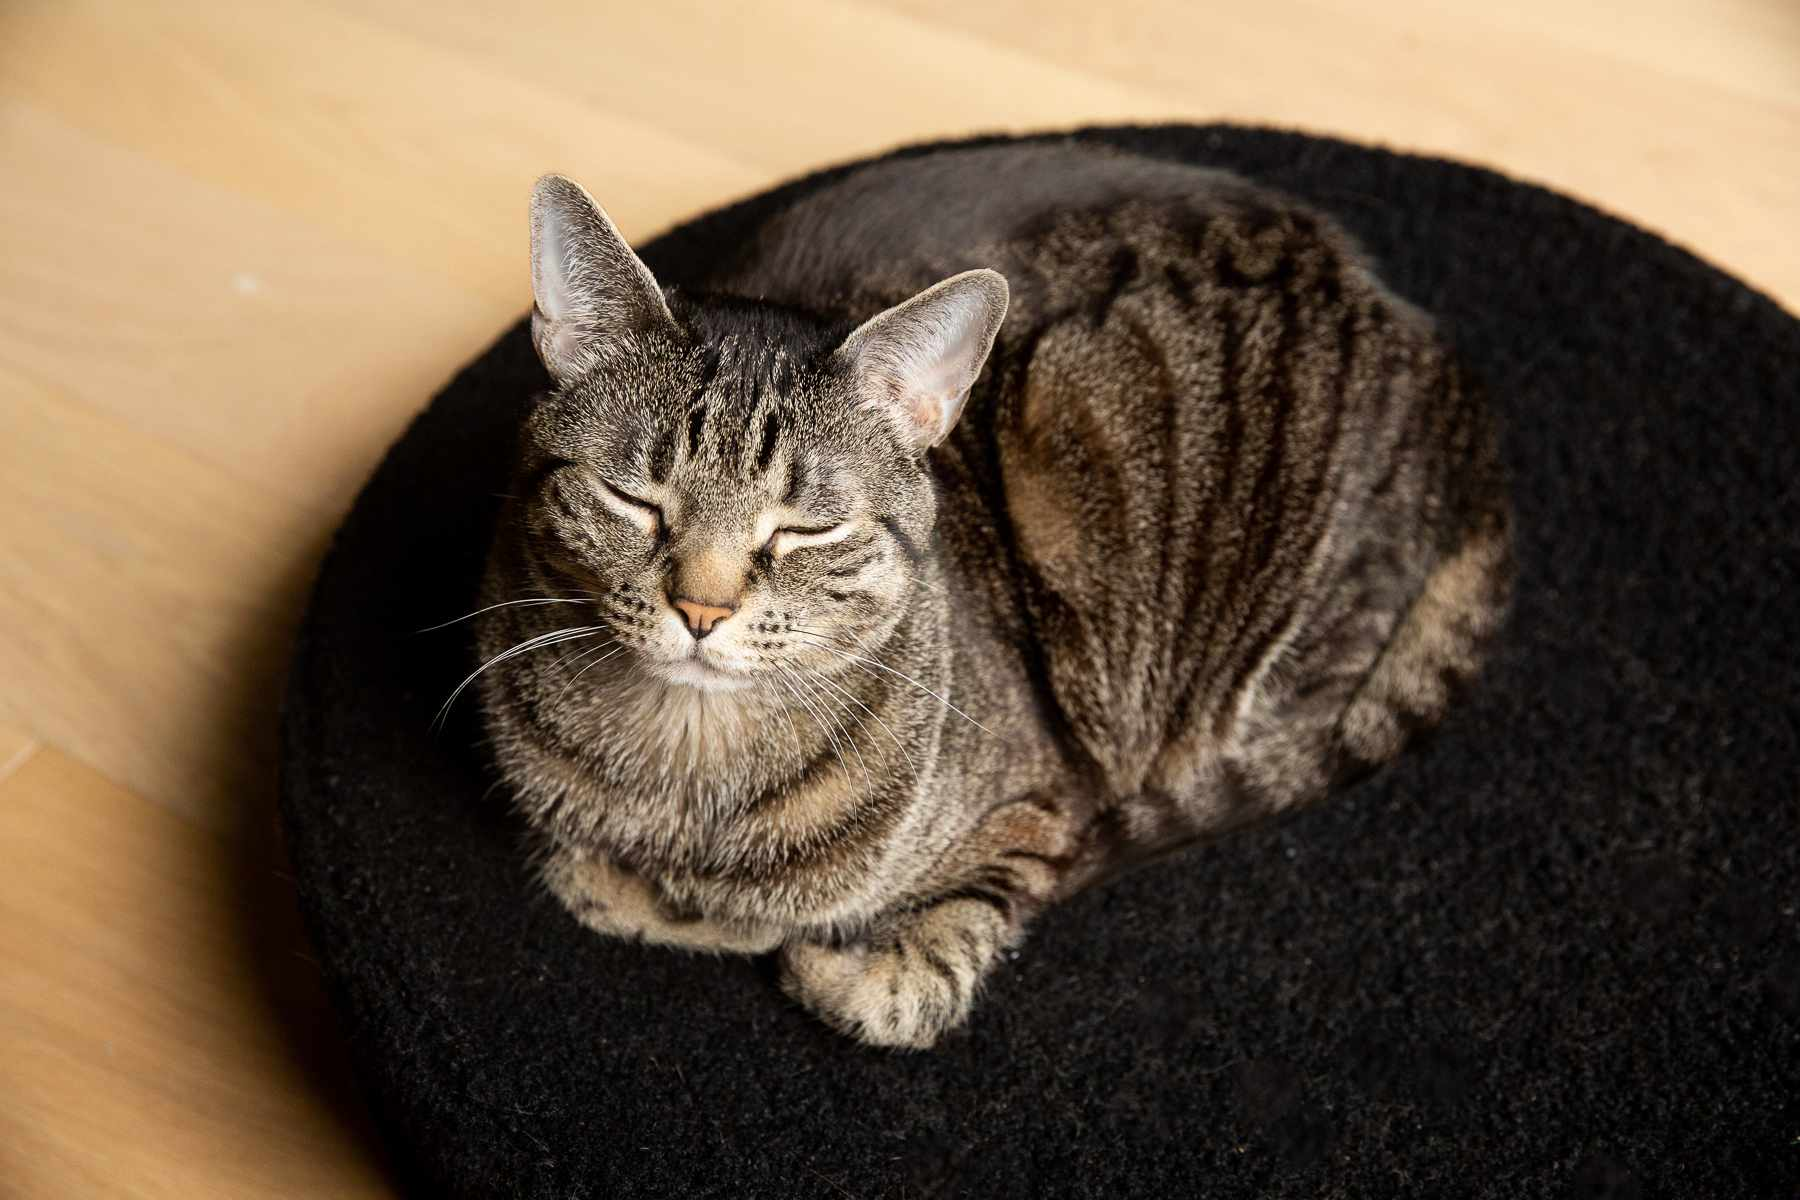 Brown striped cat with eyes closed on black rug